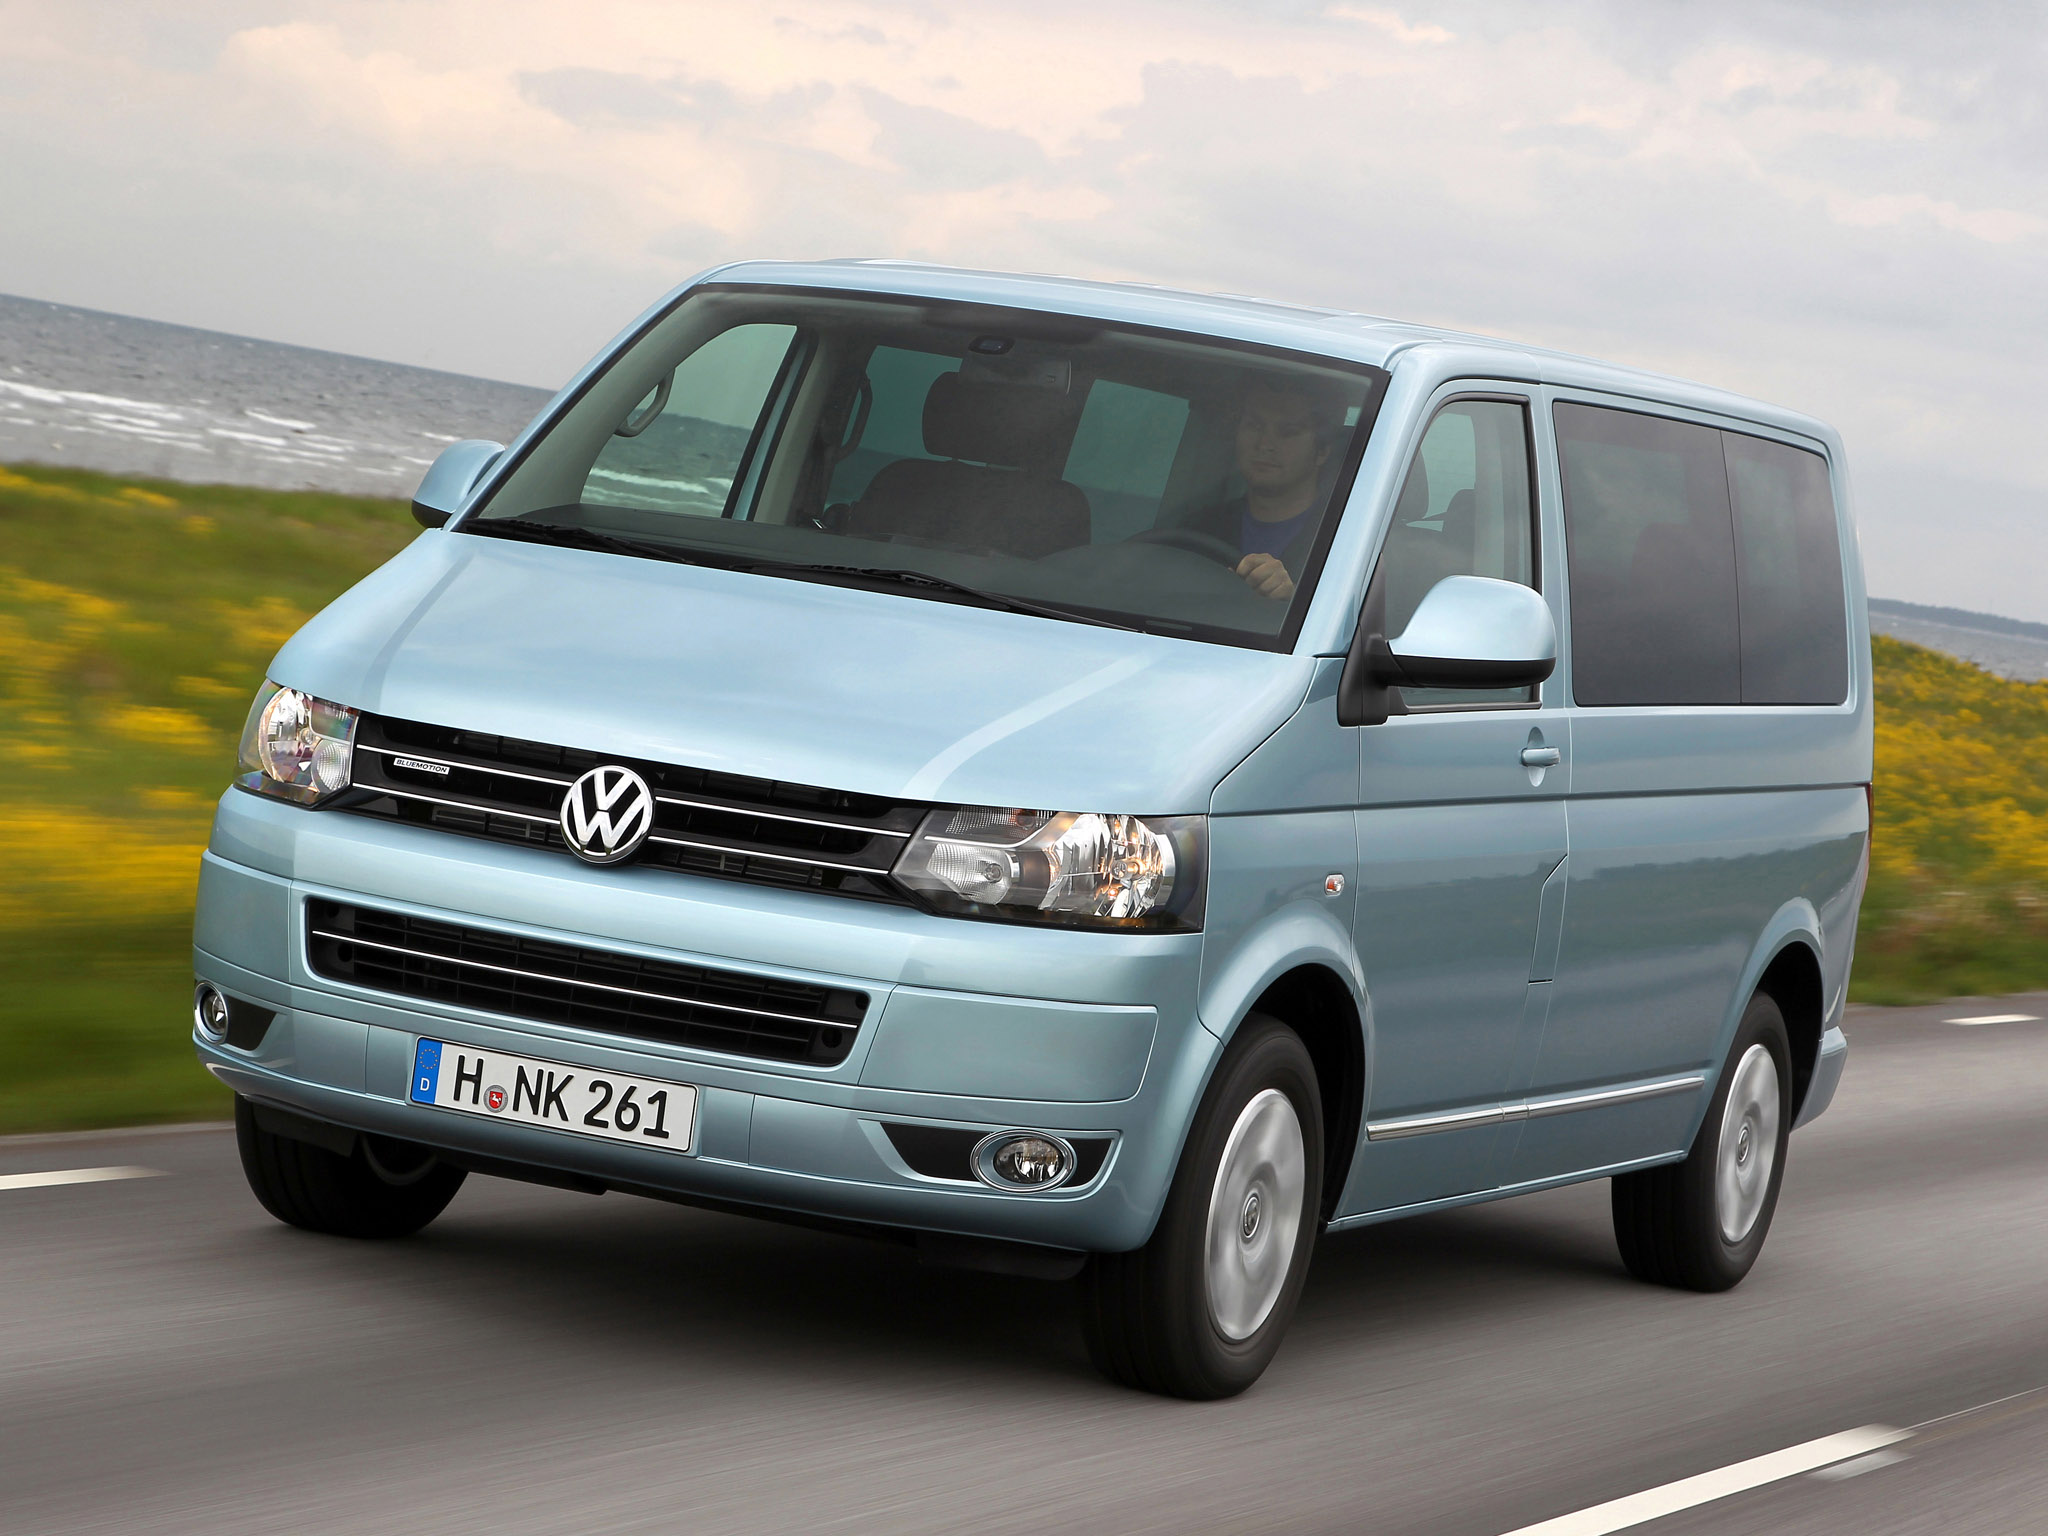 Volkswagen t5 photo - 2